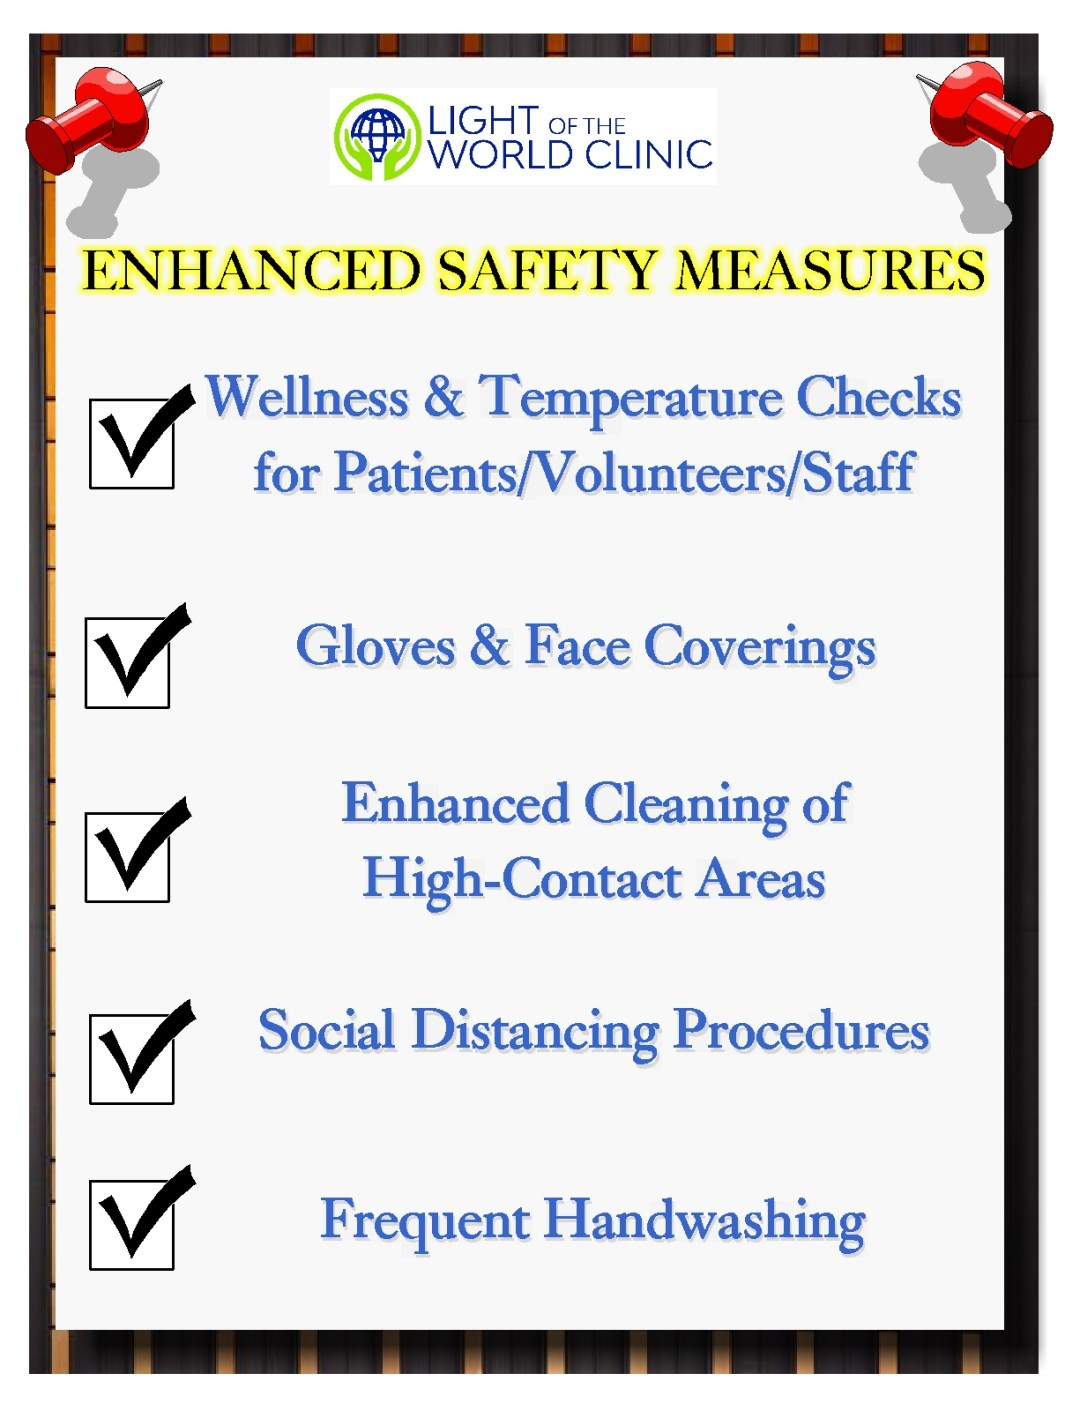 Clinic Safety Measures